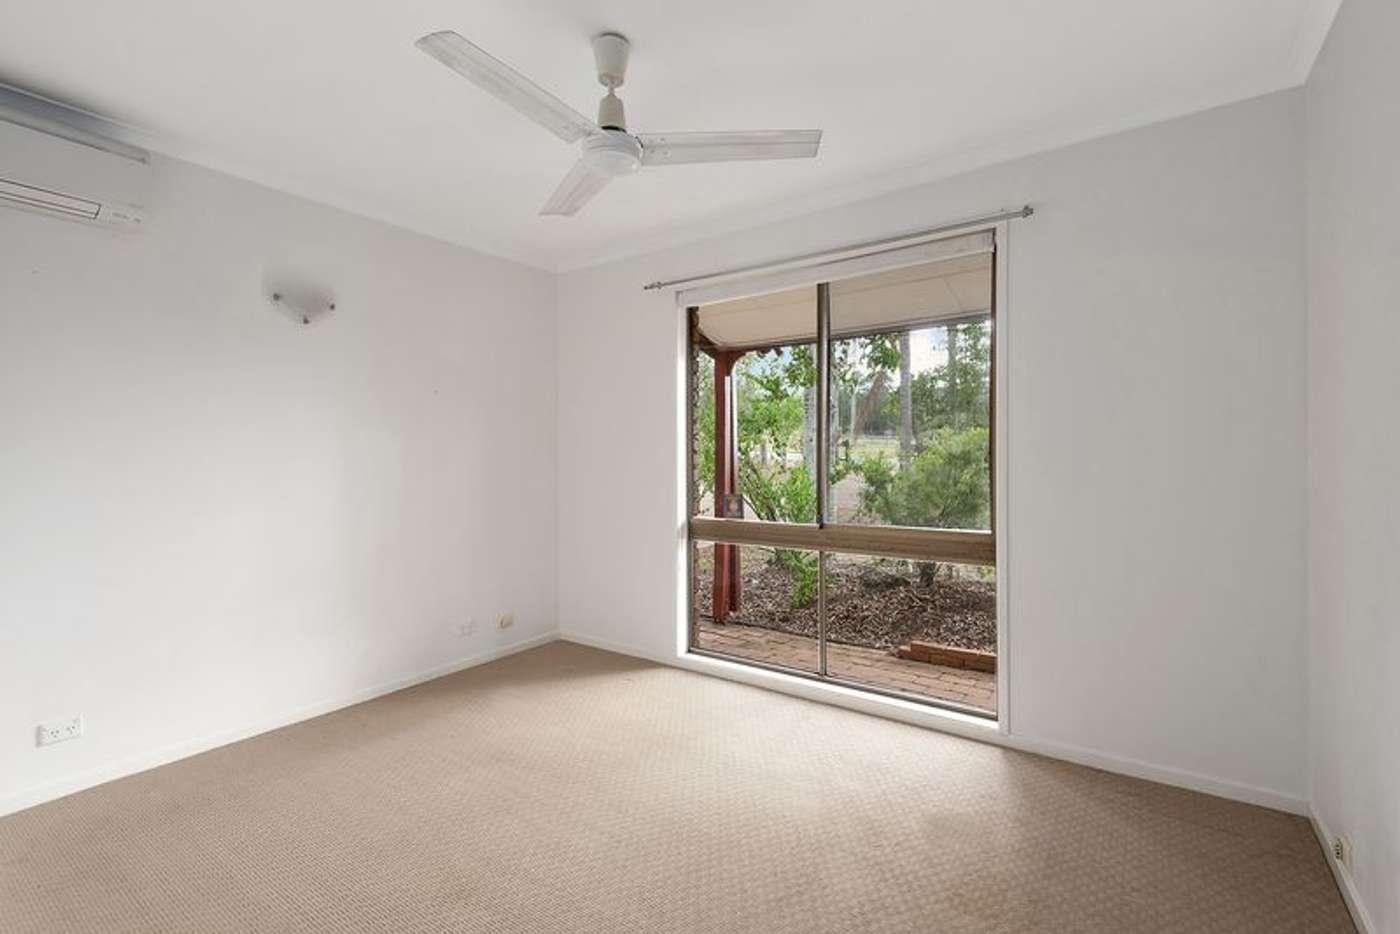 Sixth view of Homely house listing, 3671 Moggill Road, Moggill QLD 4070